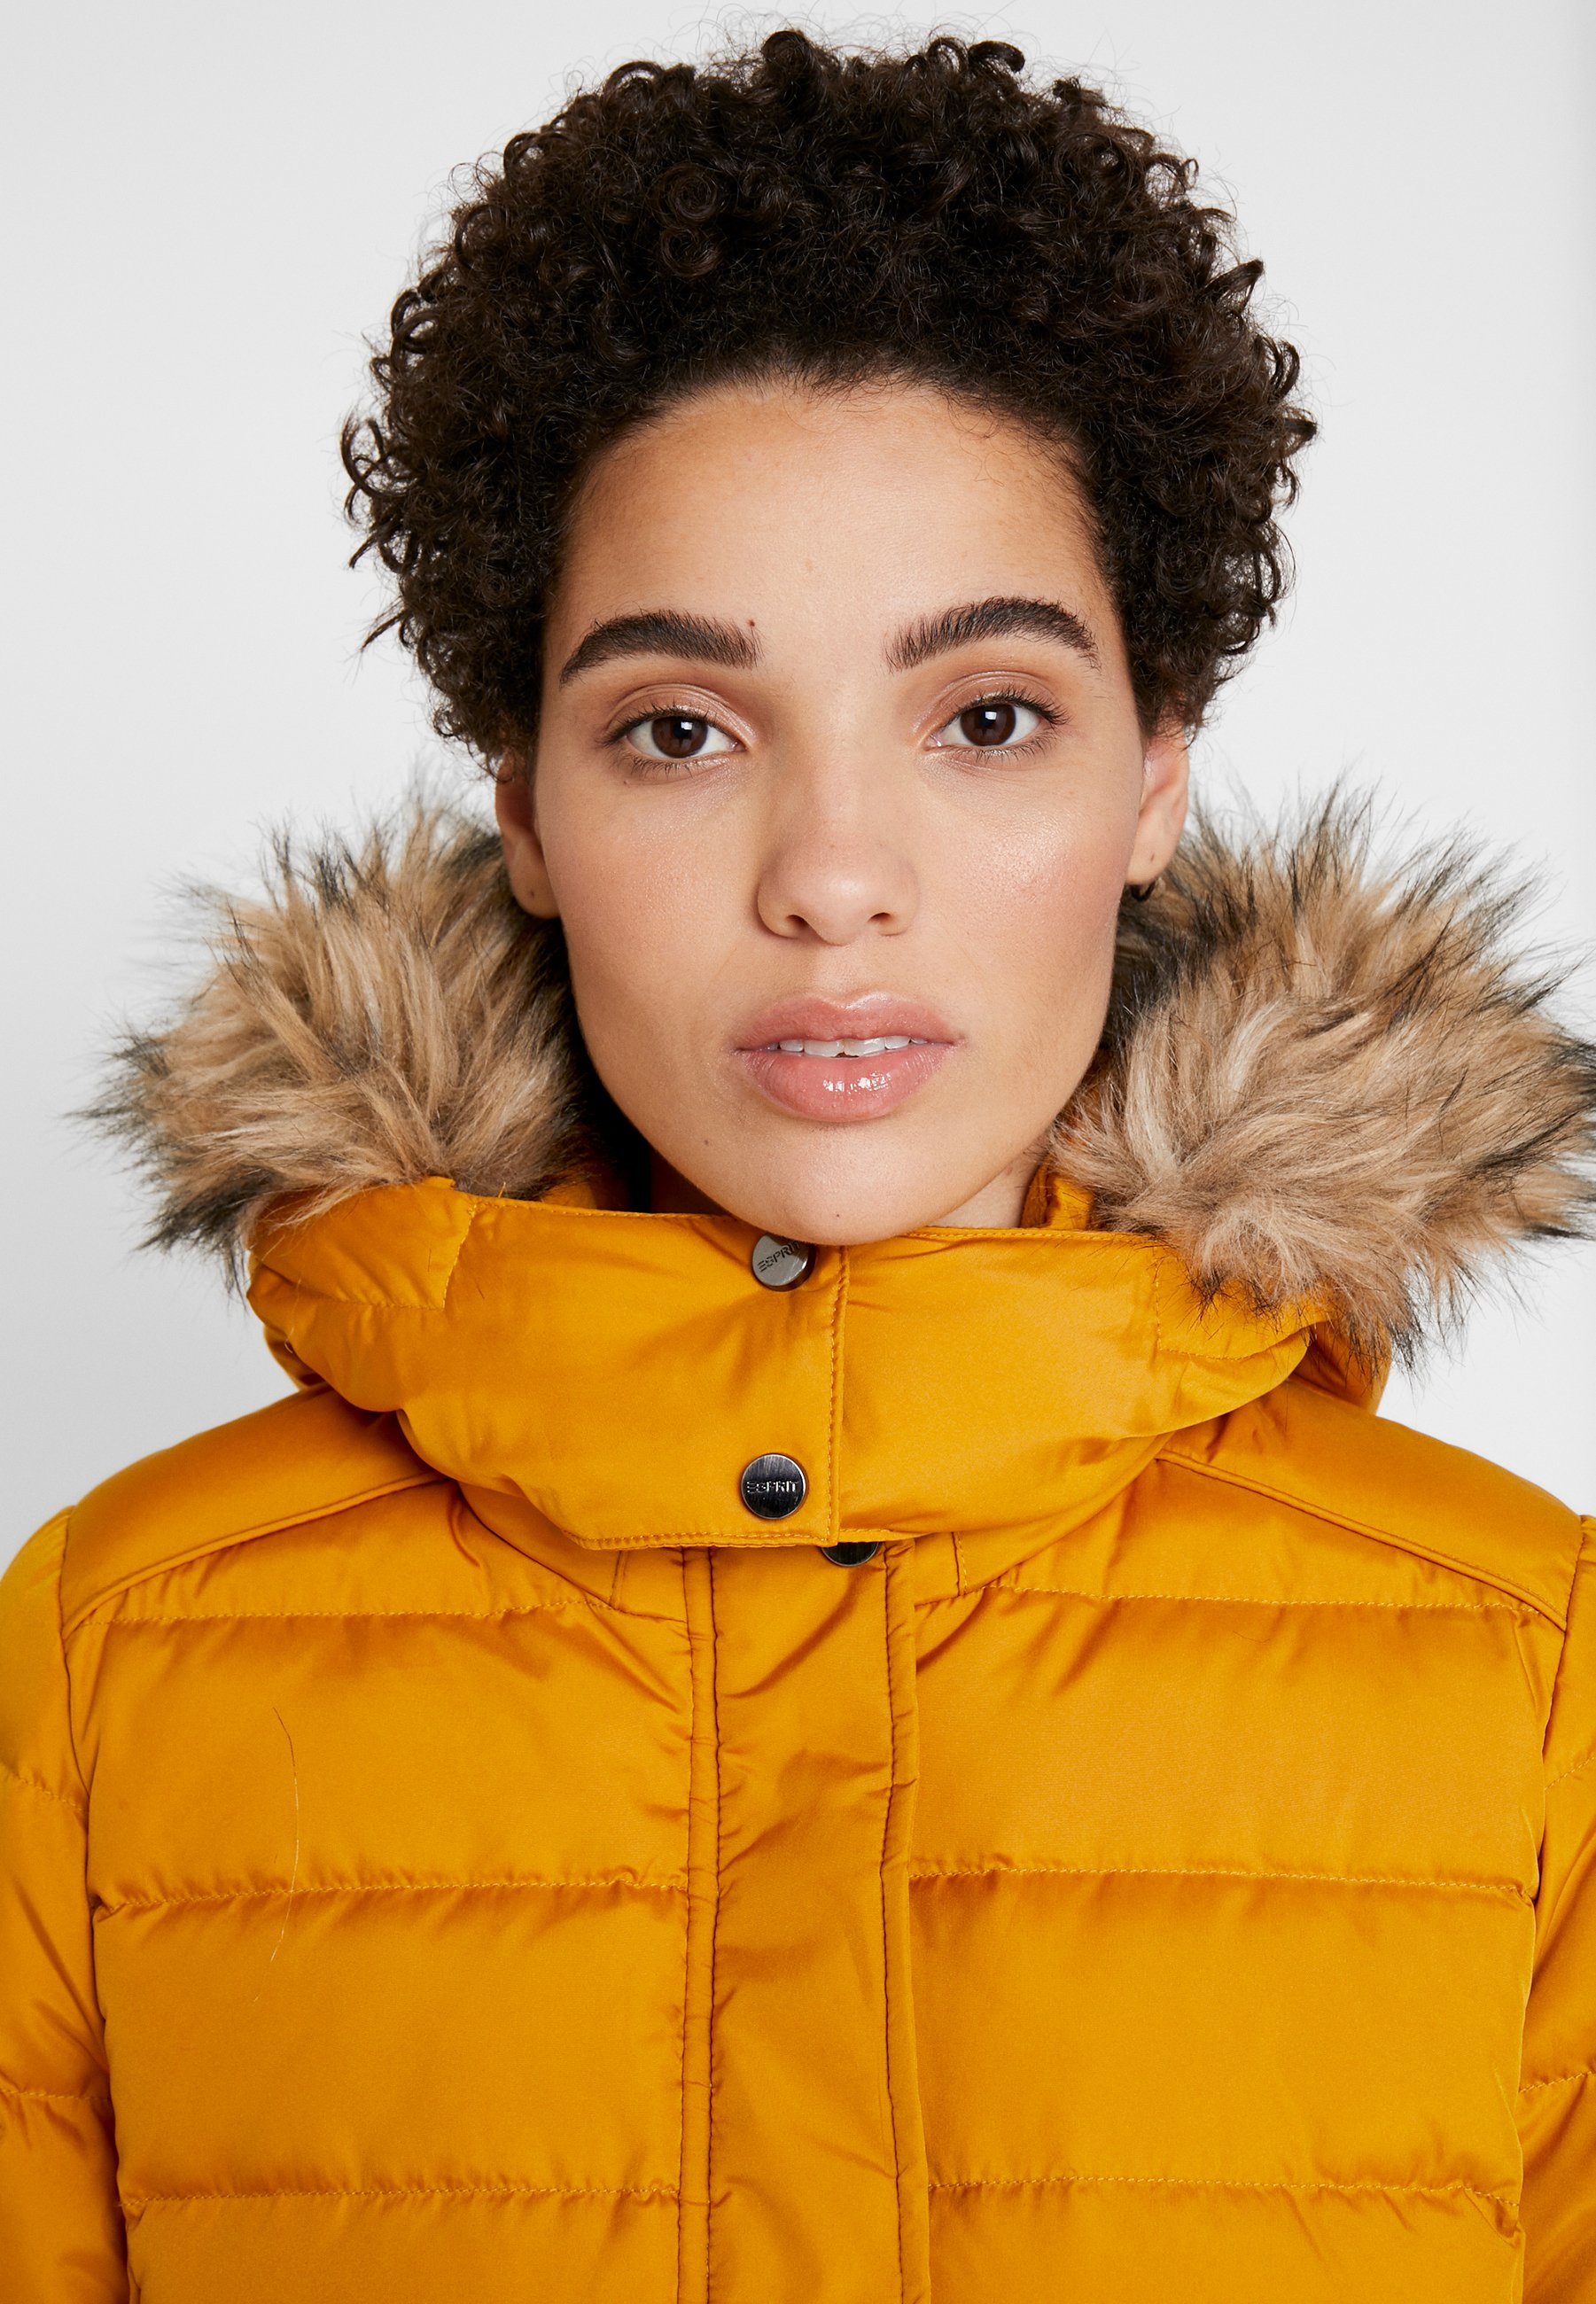 Esprit JACKET - Giacca invernale amber yellow